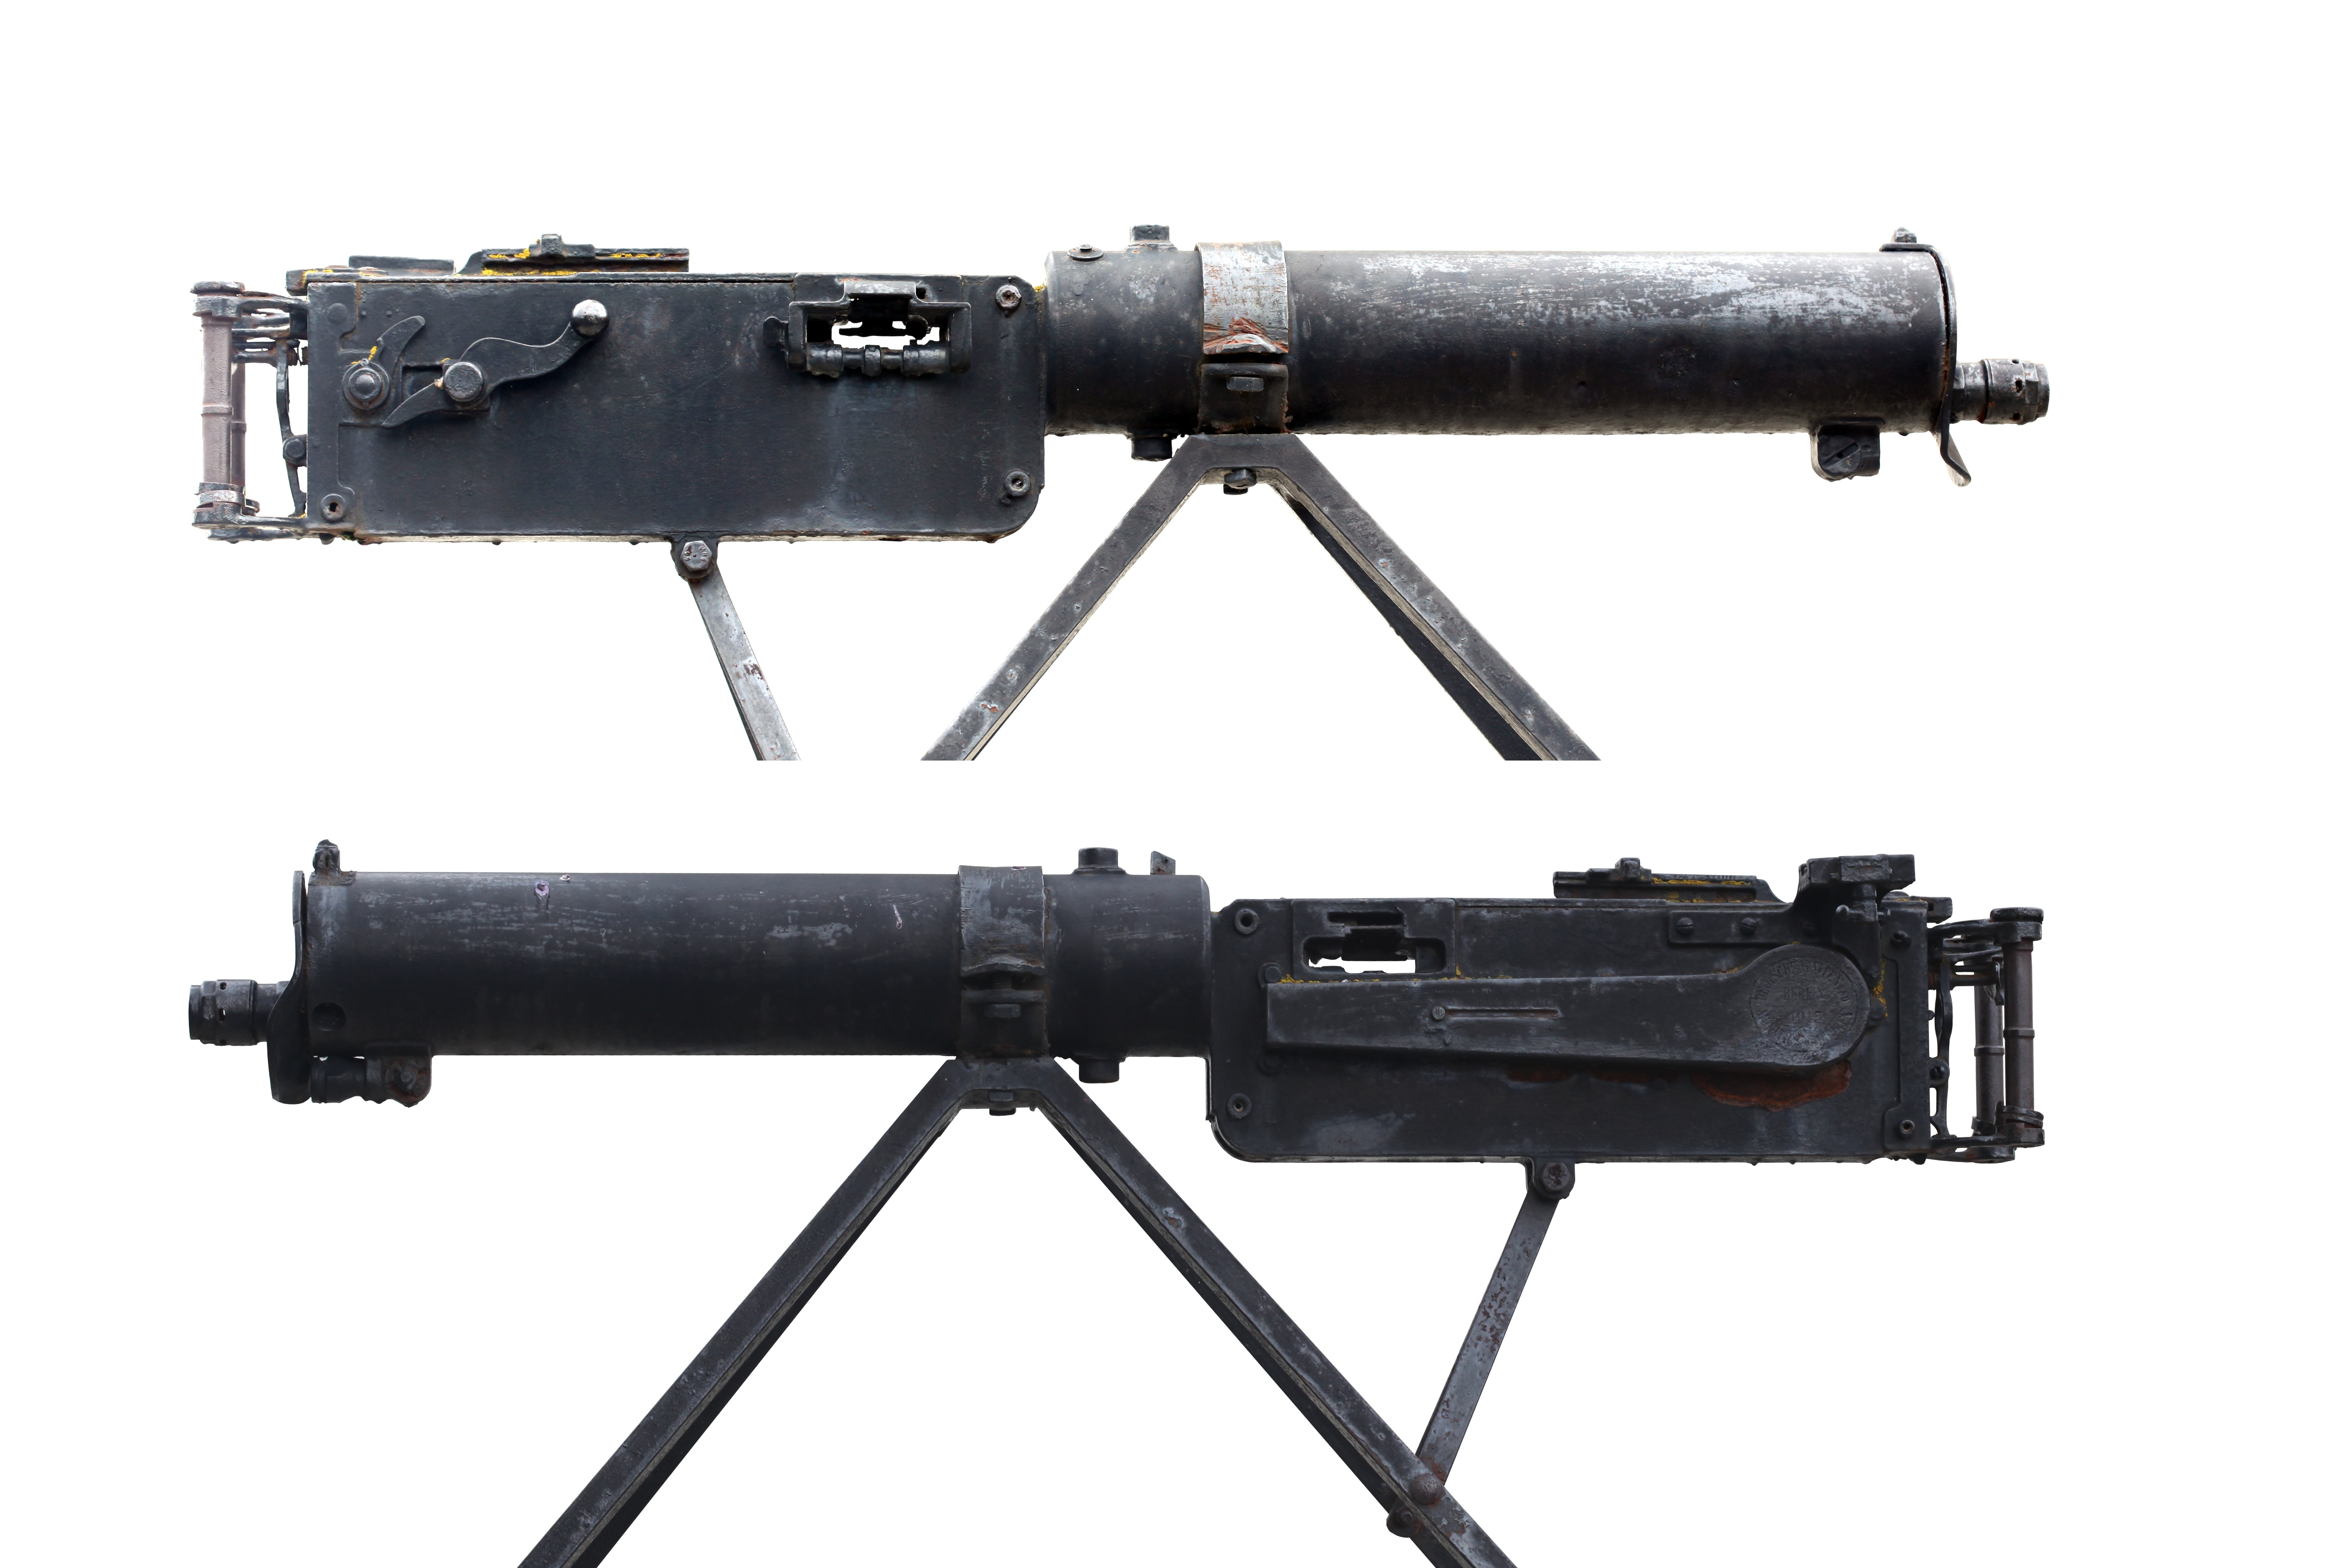 File:Maxim maching gun IMG 6372-6379.jpg - Wikipedia, the free ...